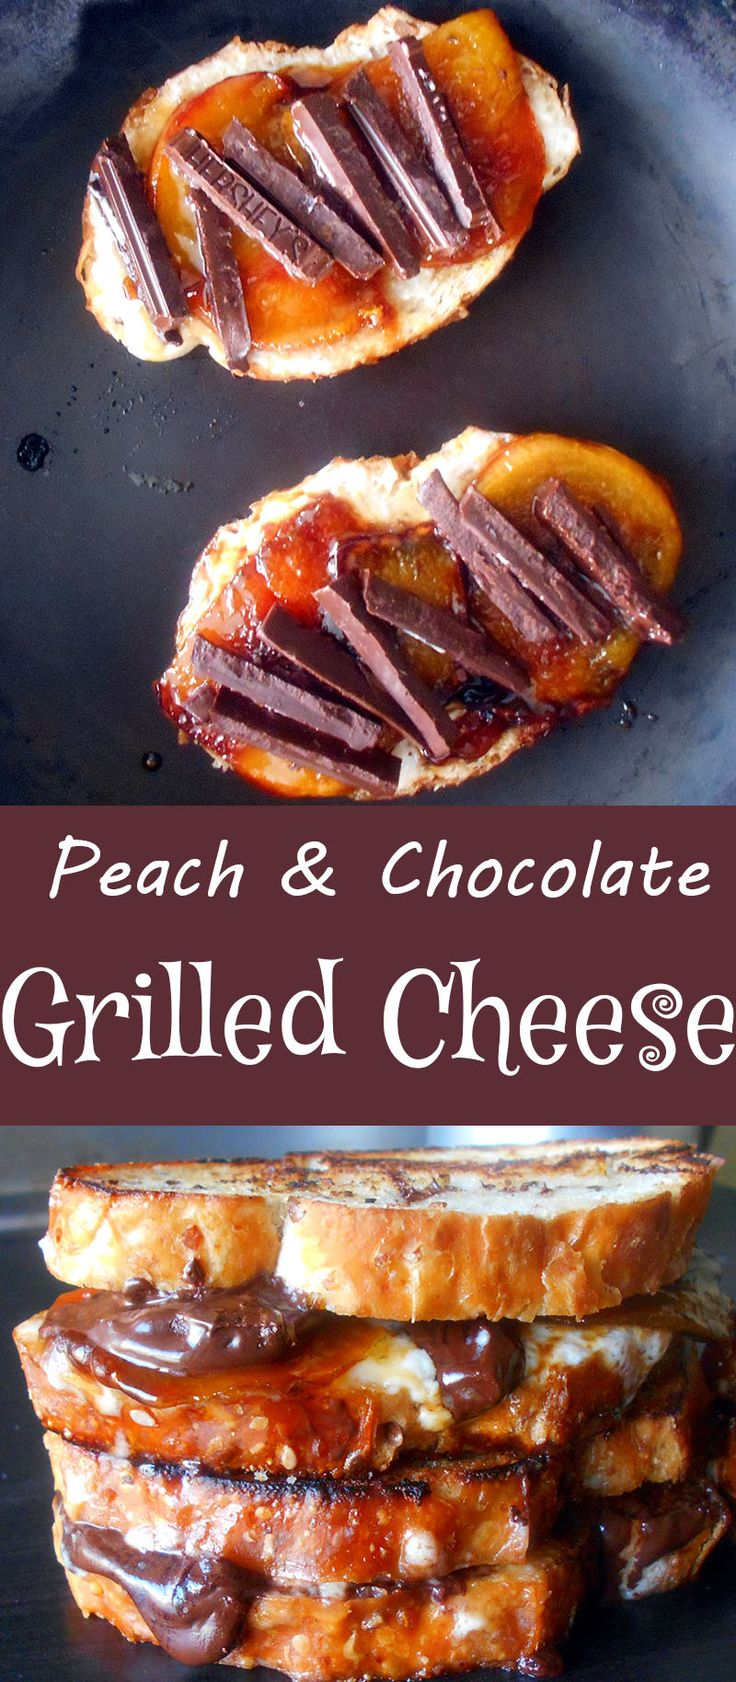 Grilled Cheese with Chocolate | Recipe | Mascarpone ...